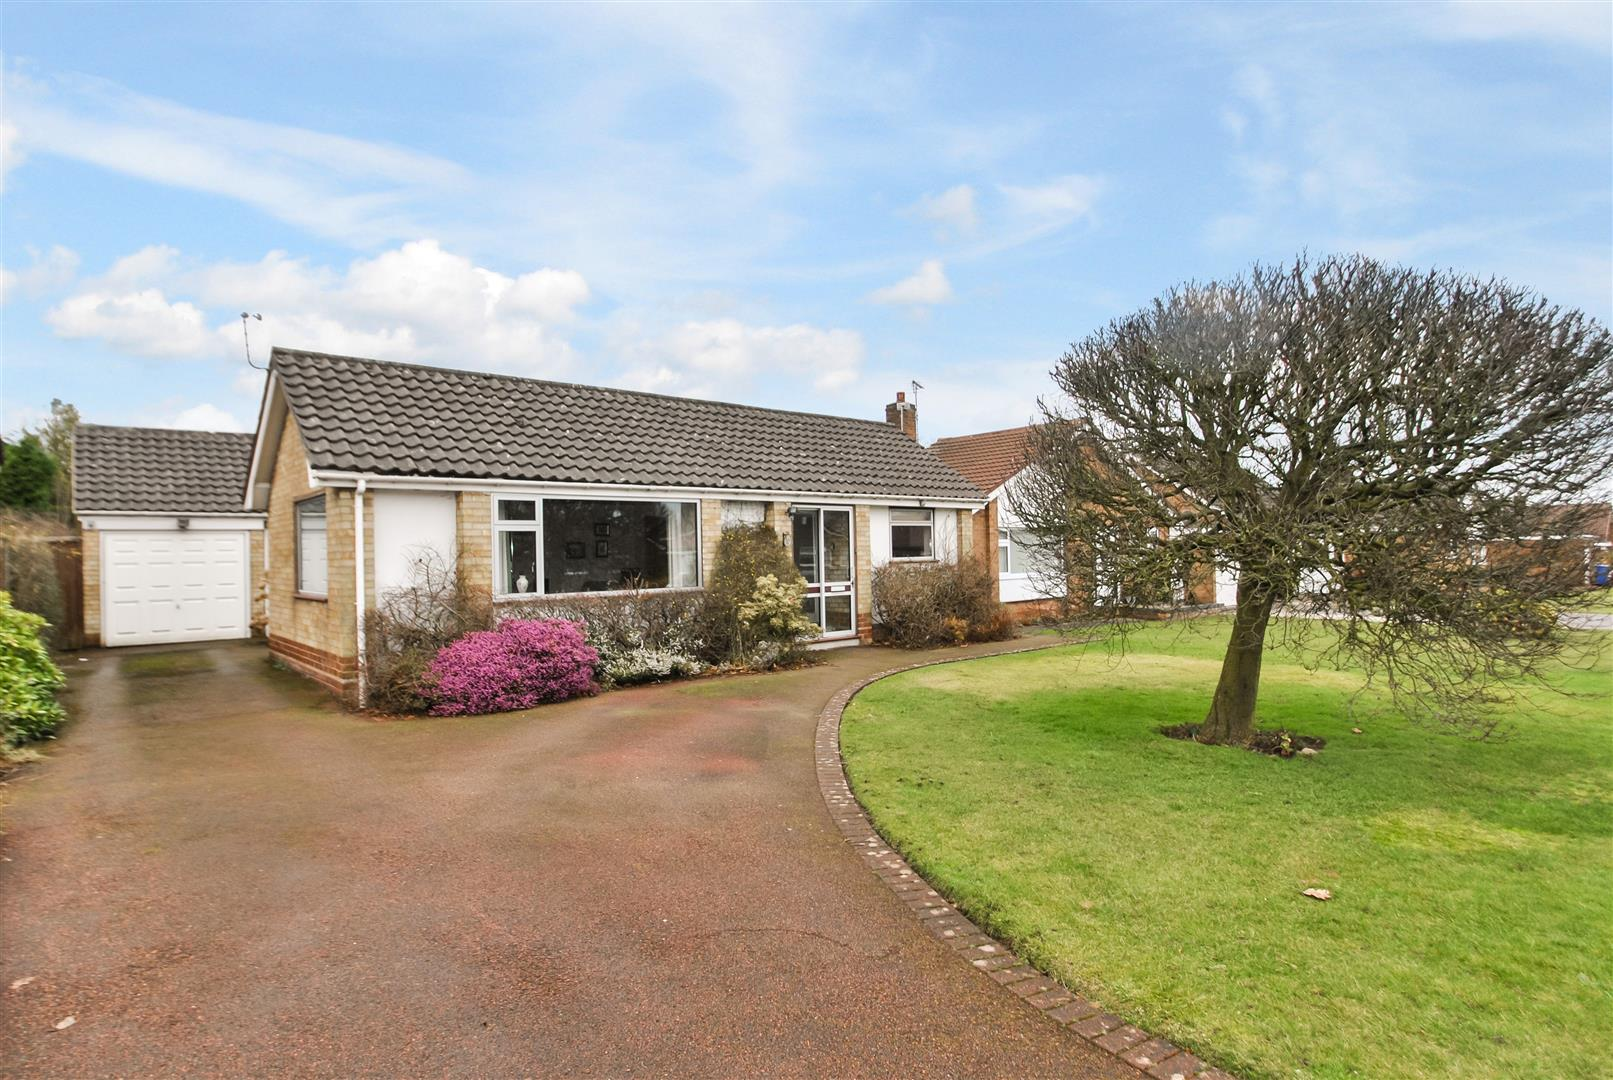 3 Bedrooms Detached Bungalow for sale in Willow Lane, APPLETON, Warrington, WA4